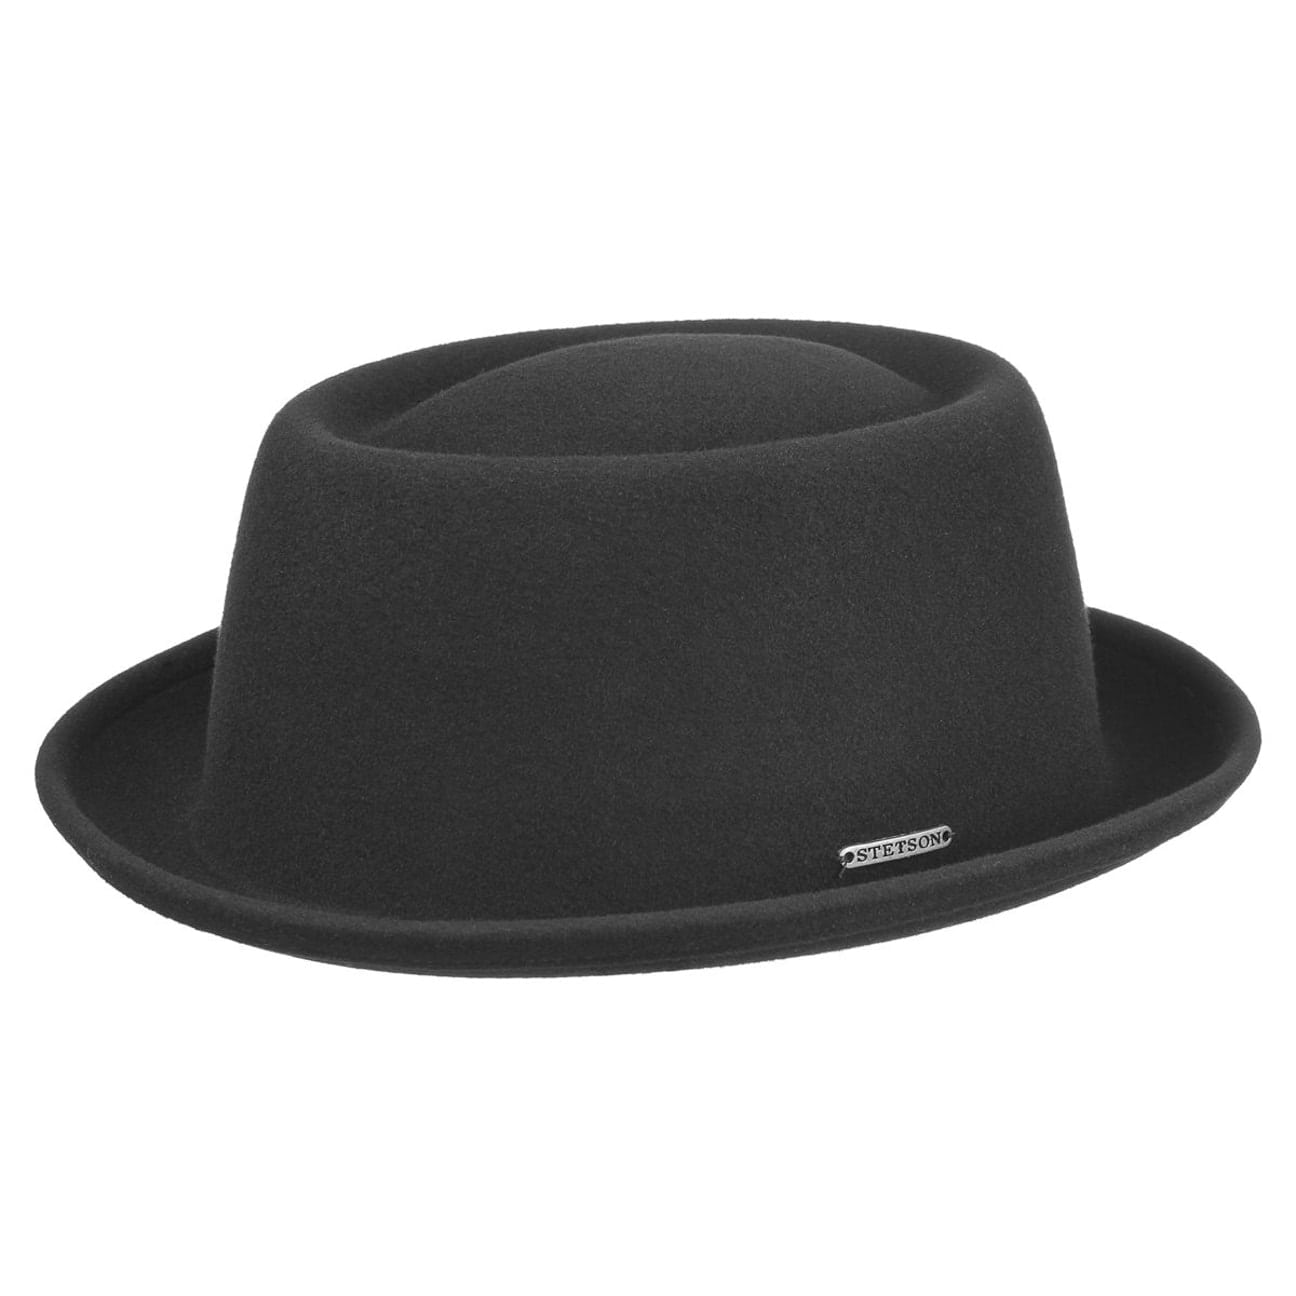 ... Cameron VitaFelt Pork Pie Hat by Stetson - black 1 15a82c7bdb9